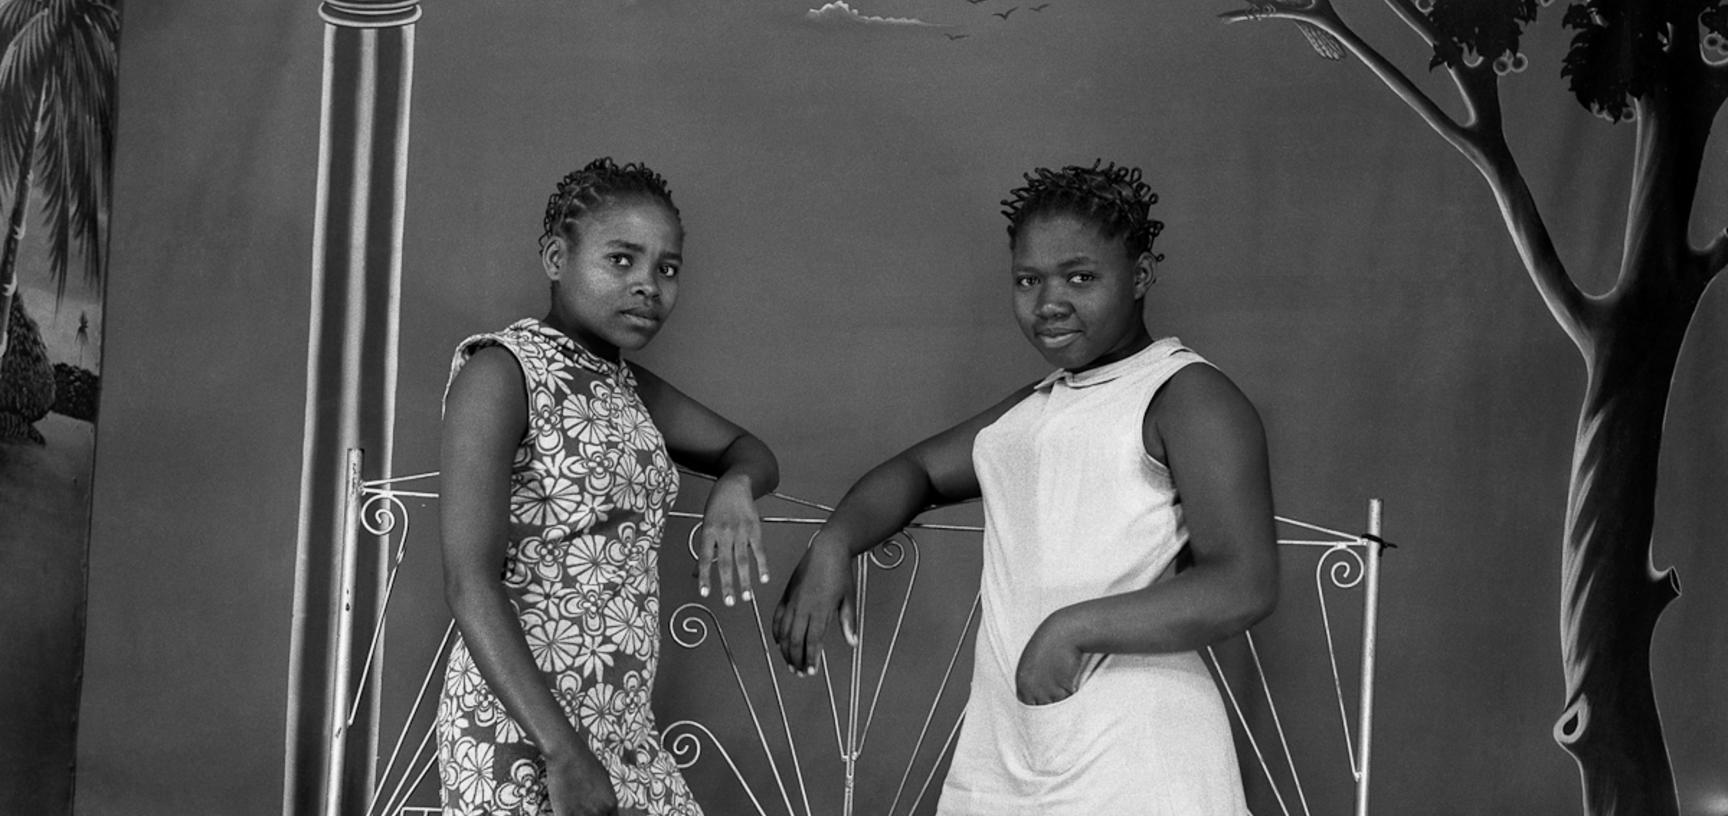 Young women leaning on an ornamental iron grille in front of a painted studio backdrop. Photograph by Jacques Touselle. Mbouda, Cameroon. Early 1970s.